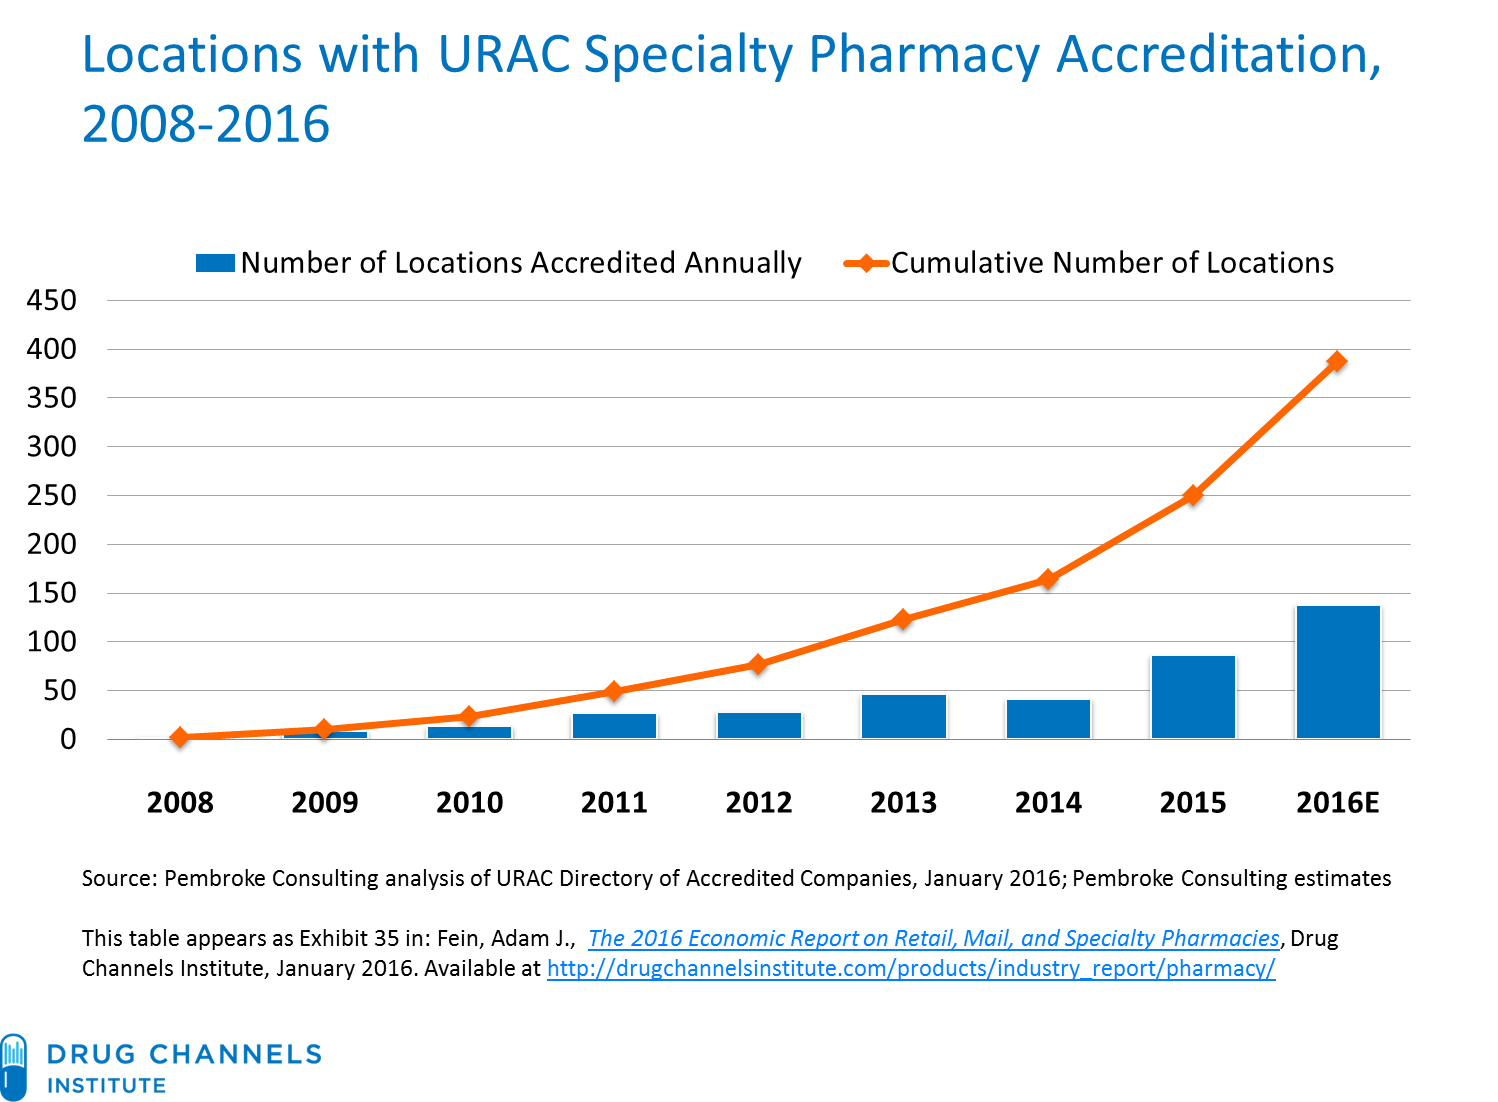 Drug Channels The Specialty Pharmacy Accreditation Boom Continues